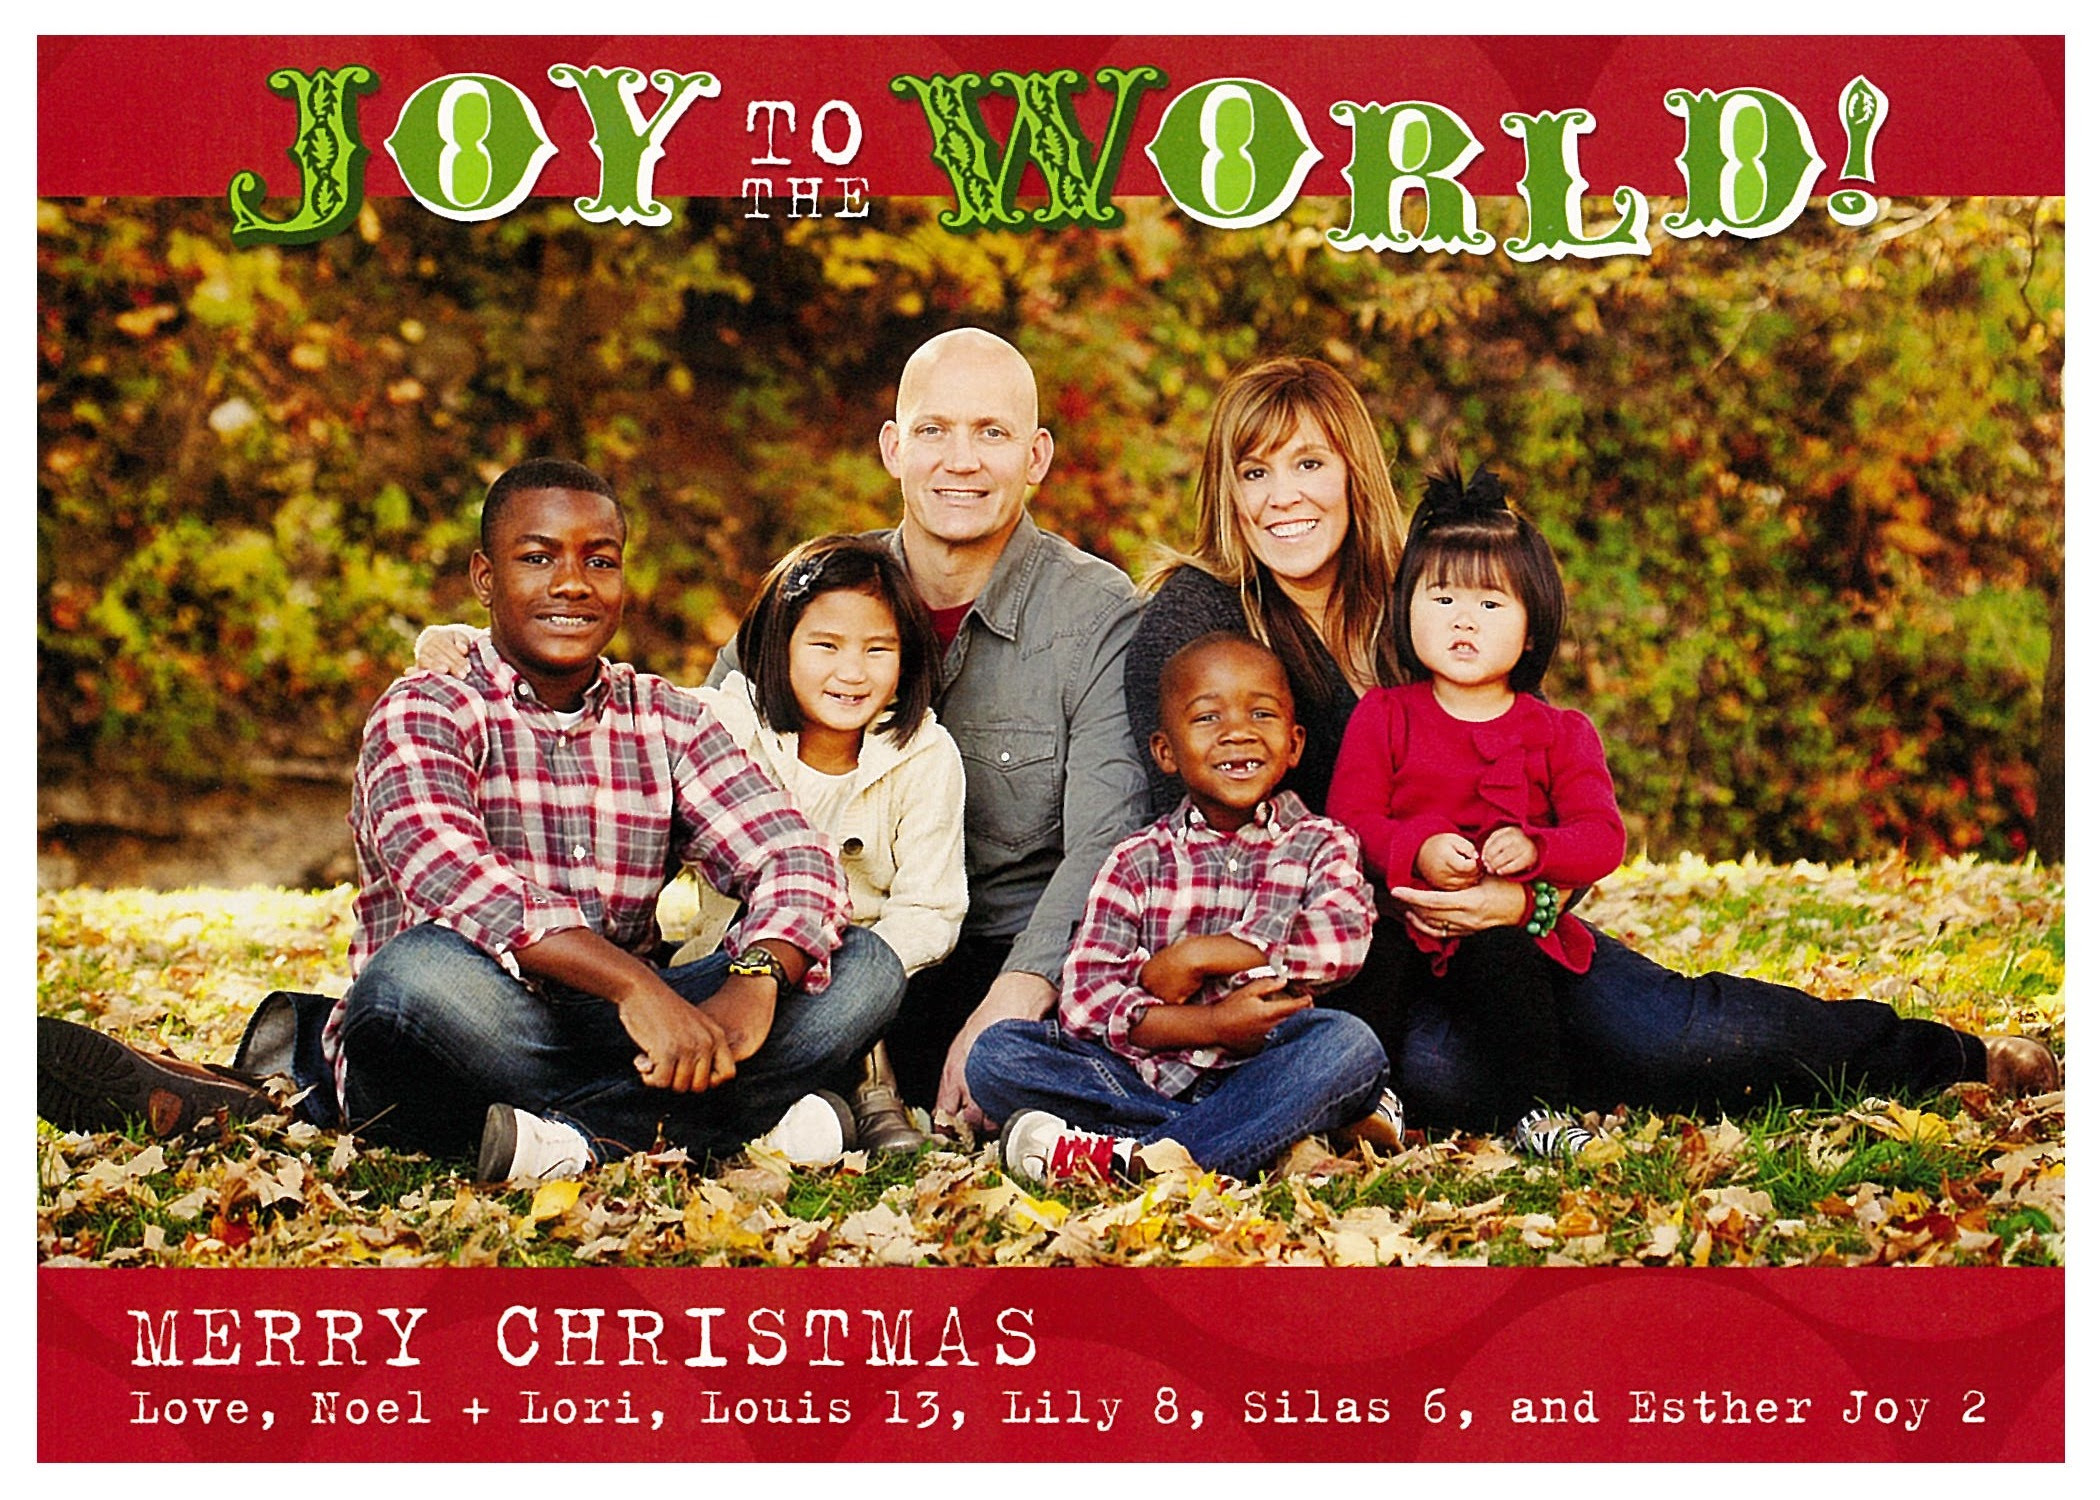 how to take a family photo for your christmas cards many people stay in touch with family and friends through holiday themed cards pictures and gifts